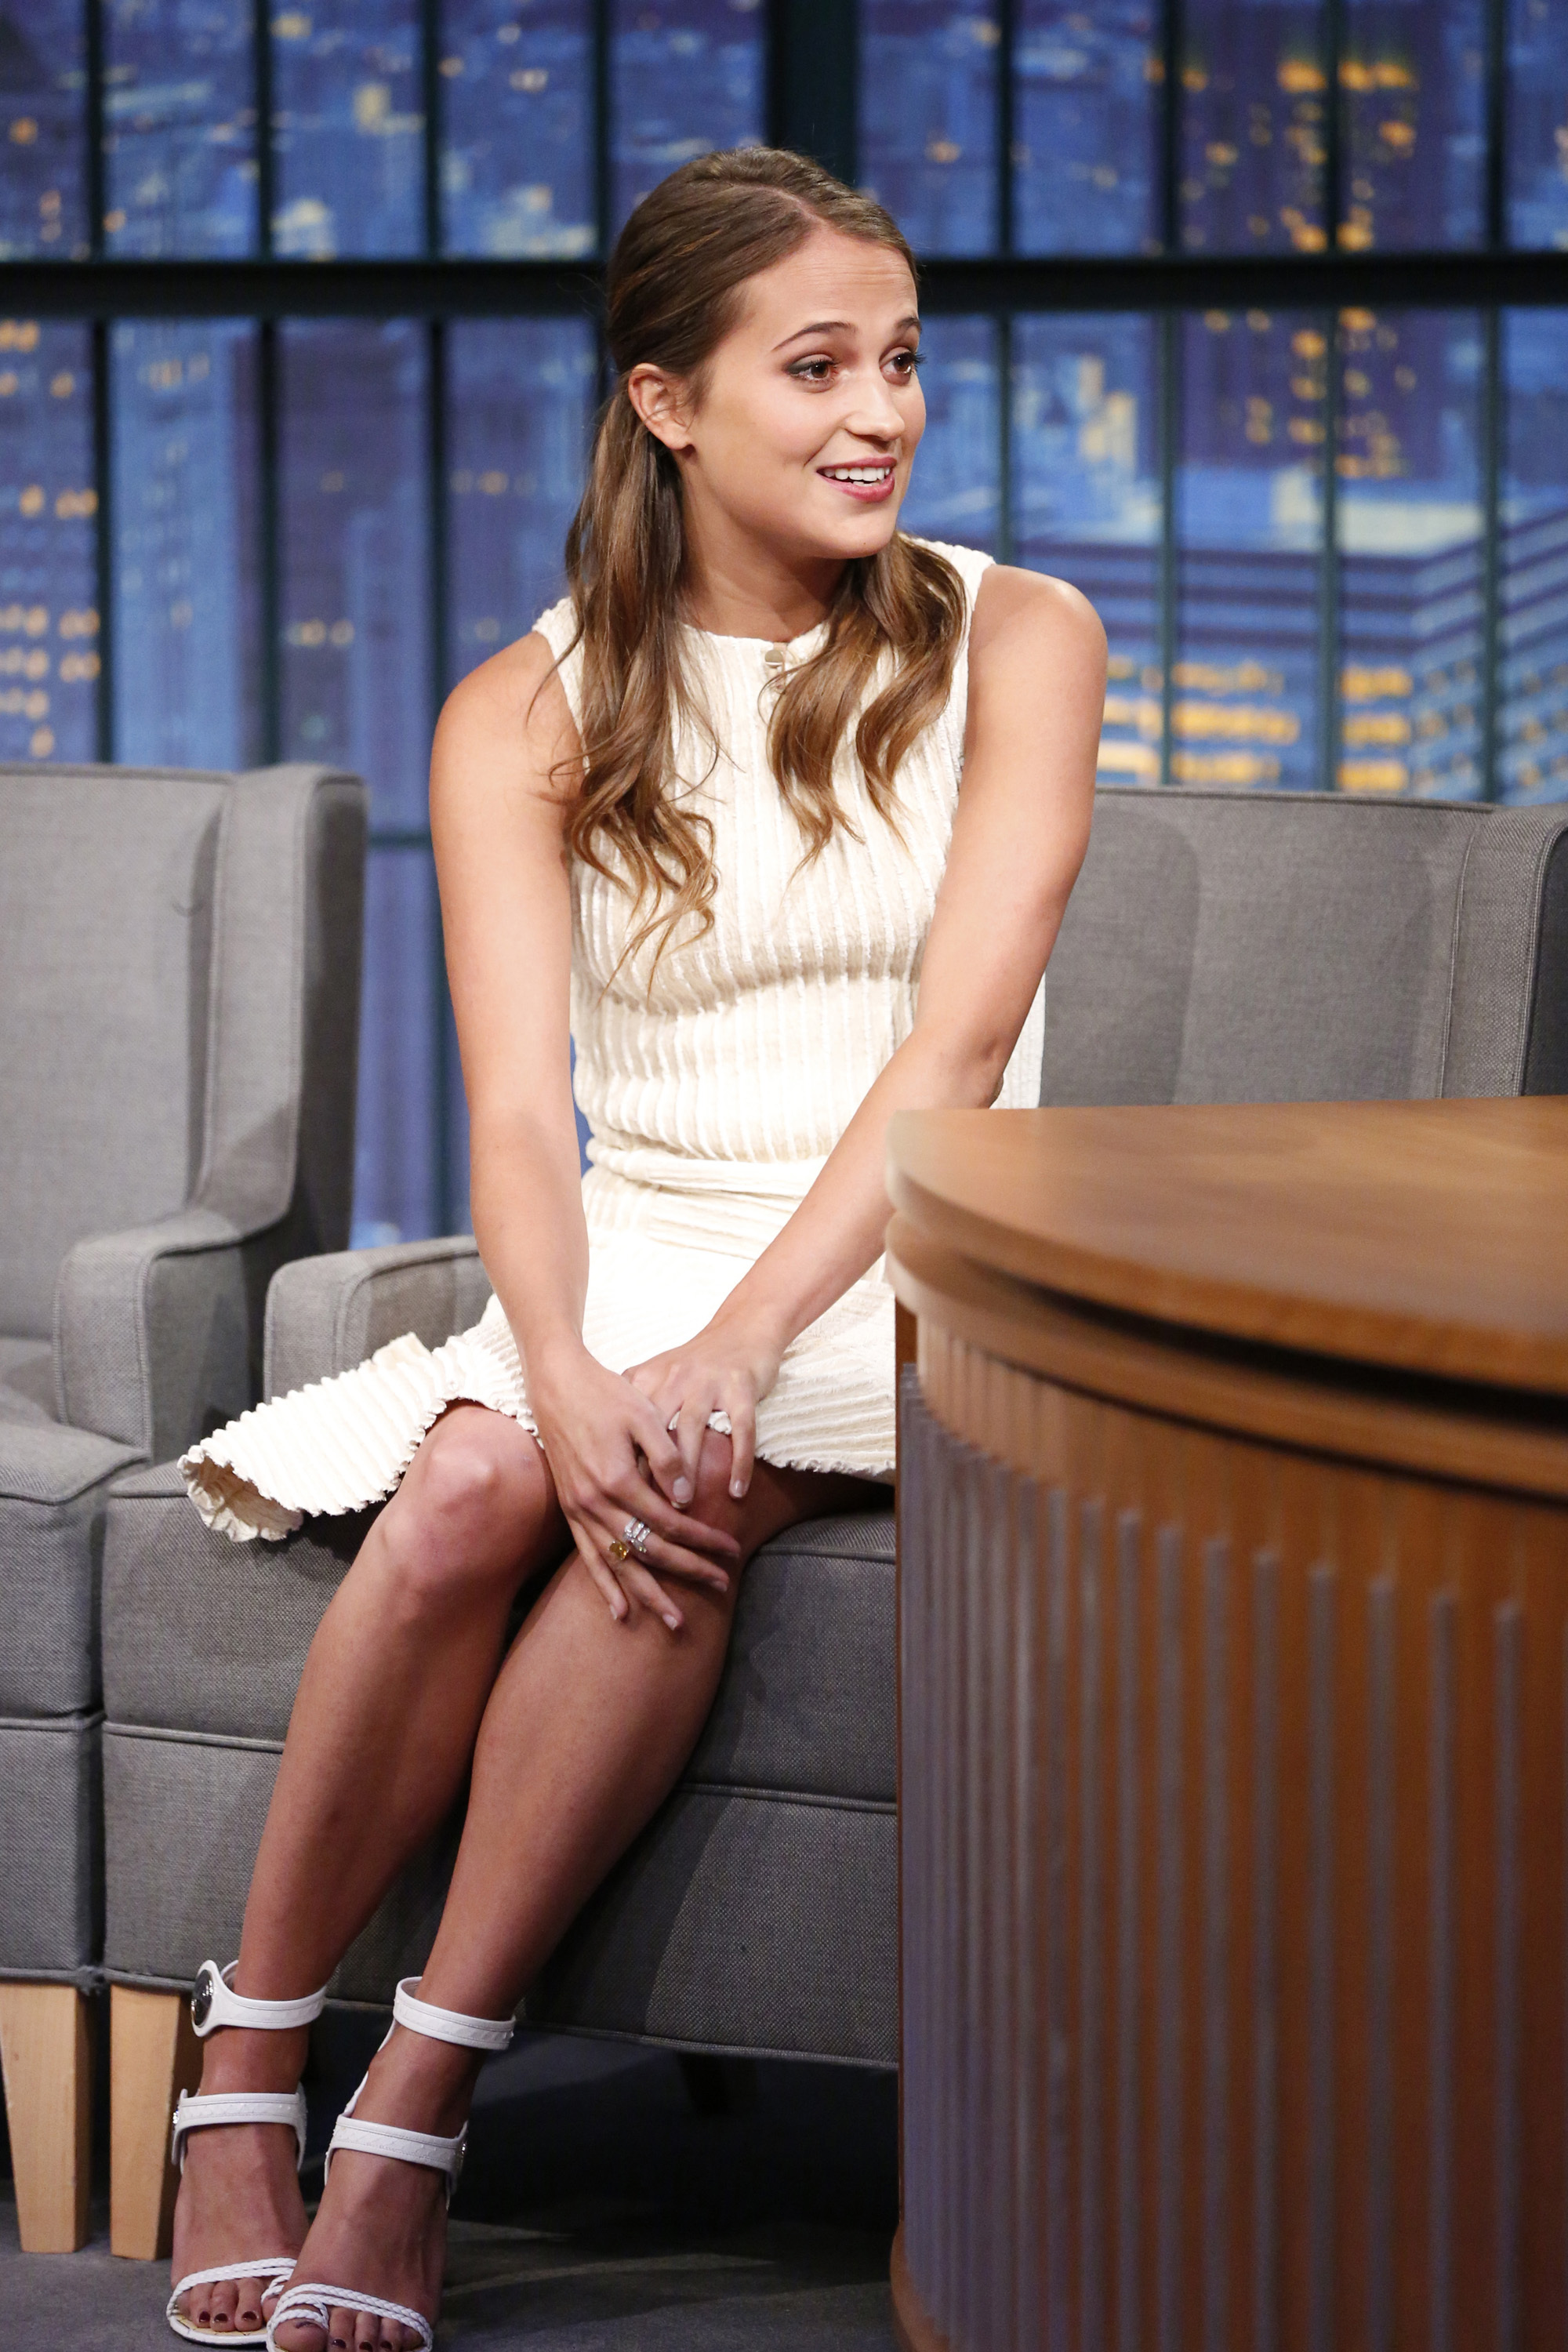 Rate This Girl Day 299 Alicia Vikander Bodybuilding